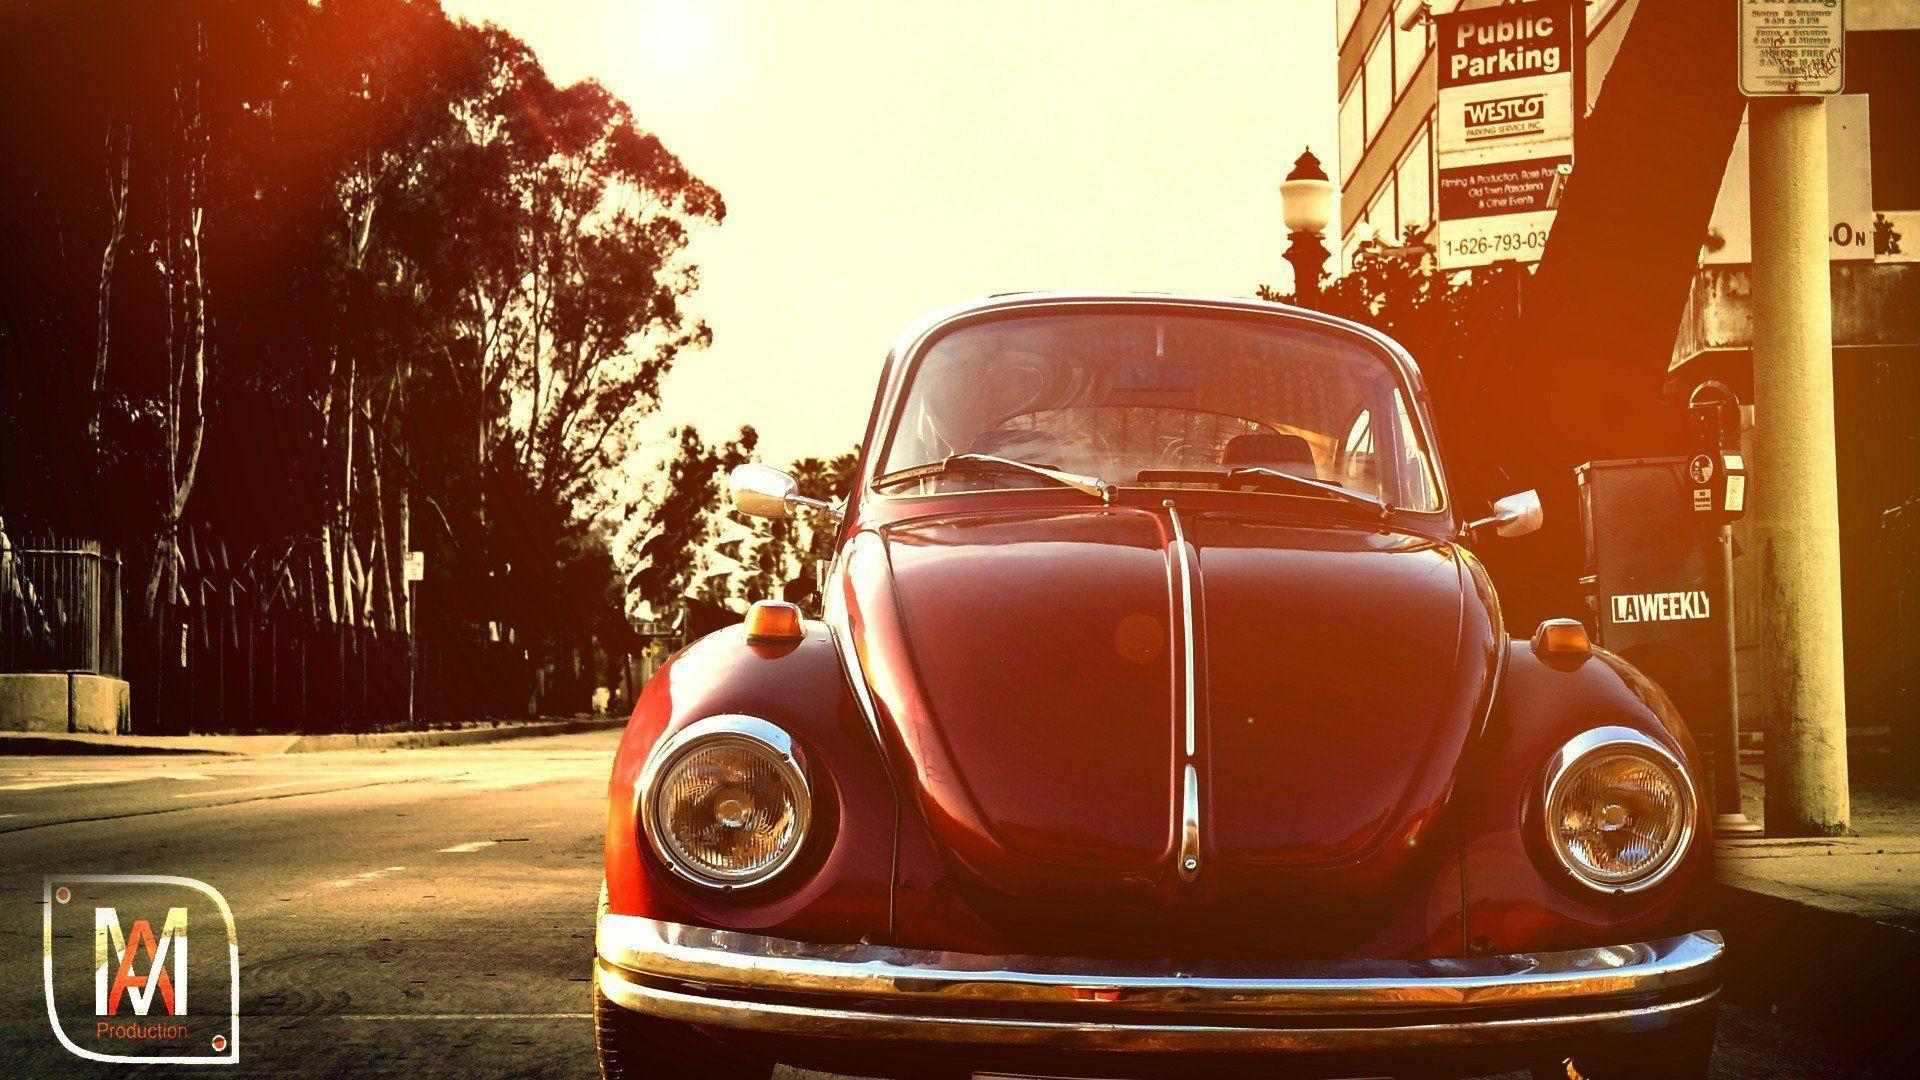 Volkswagen Beetle Retro wallpapers – wallpapers free download